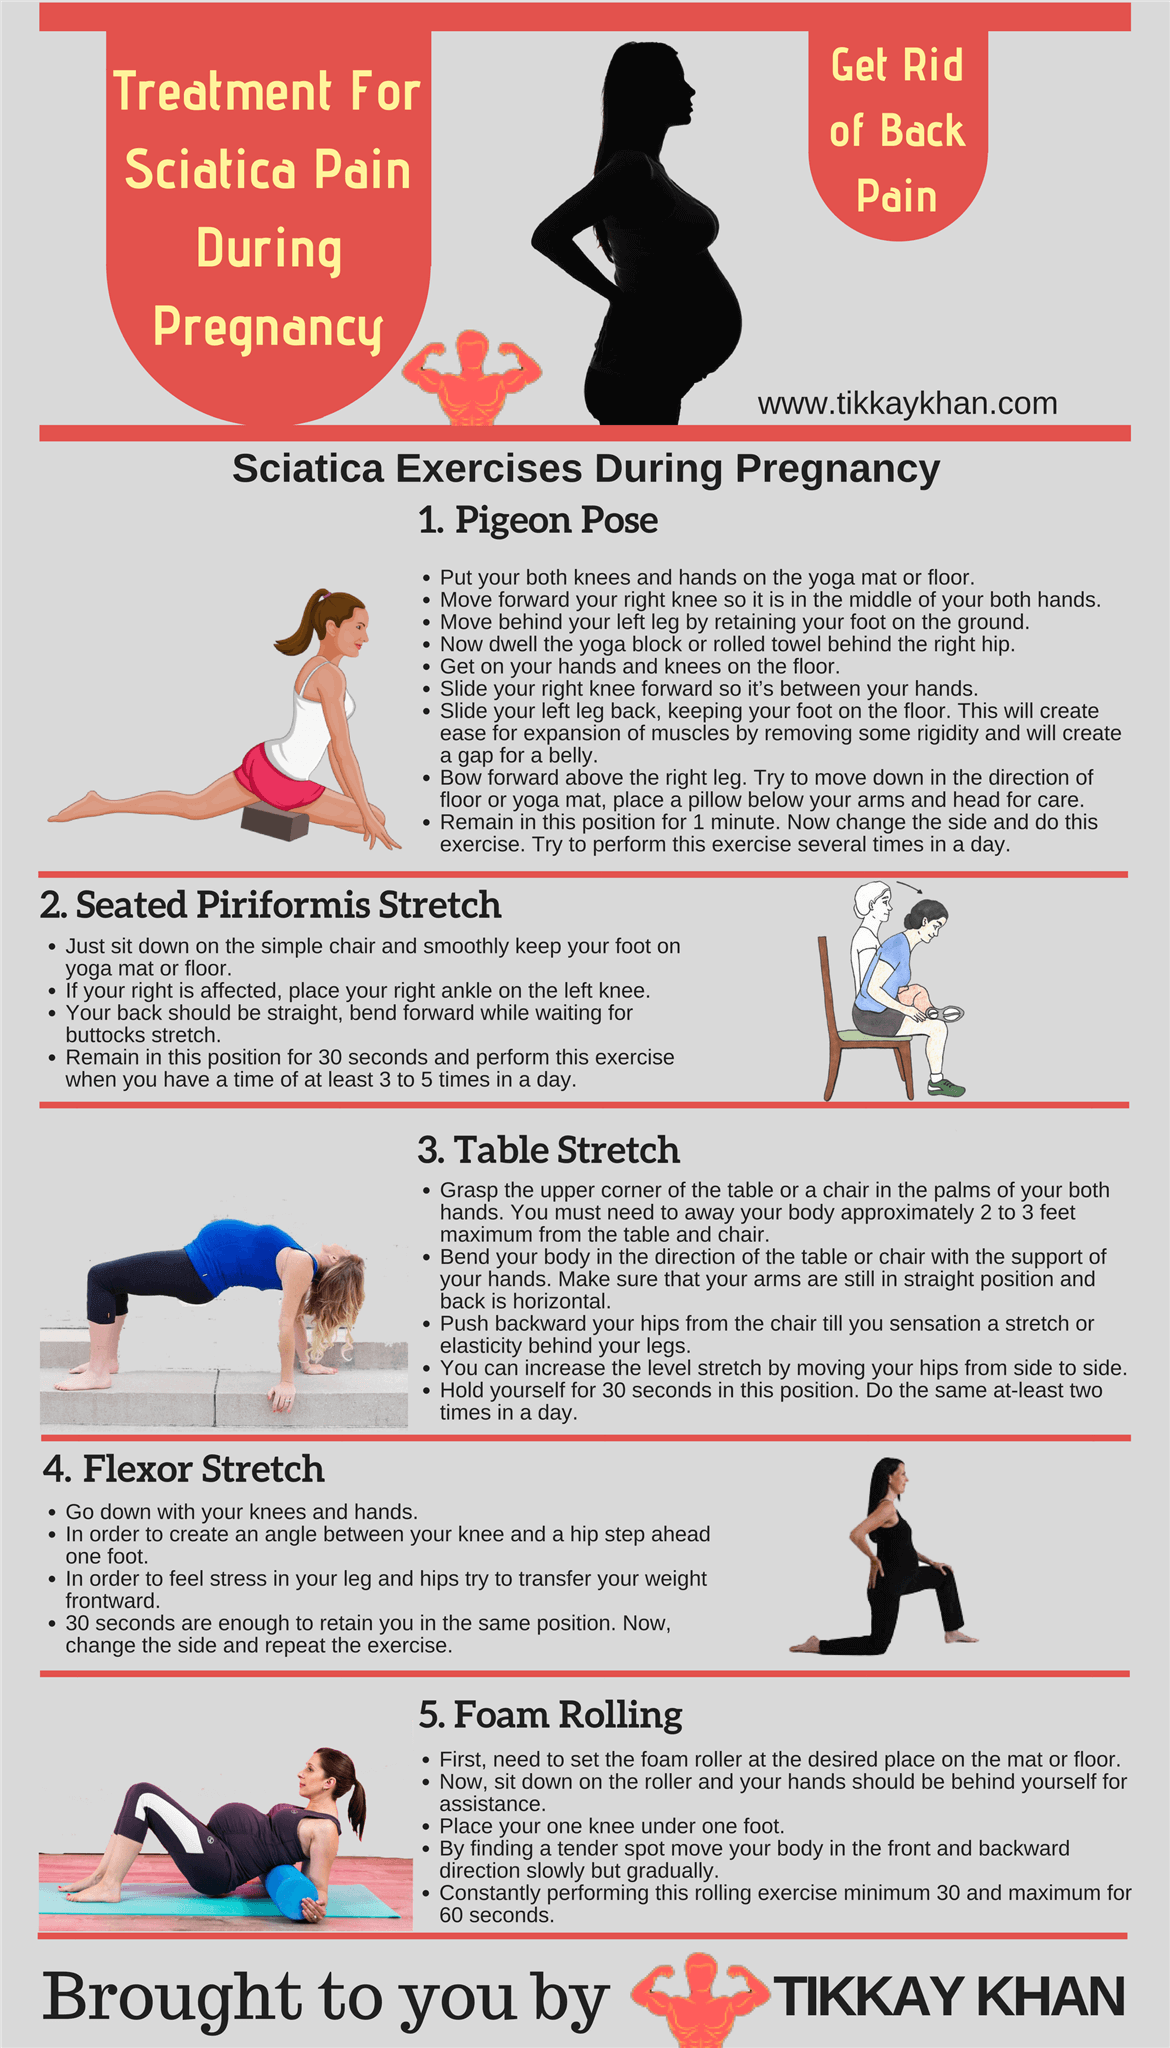 Treatment For Sciatica Pain During Pregnancy